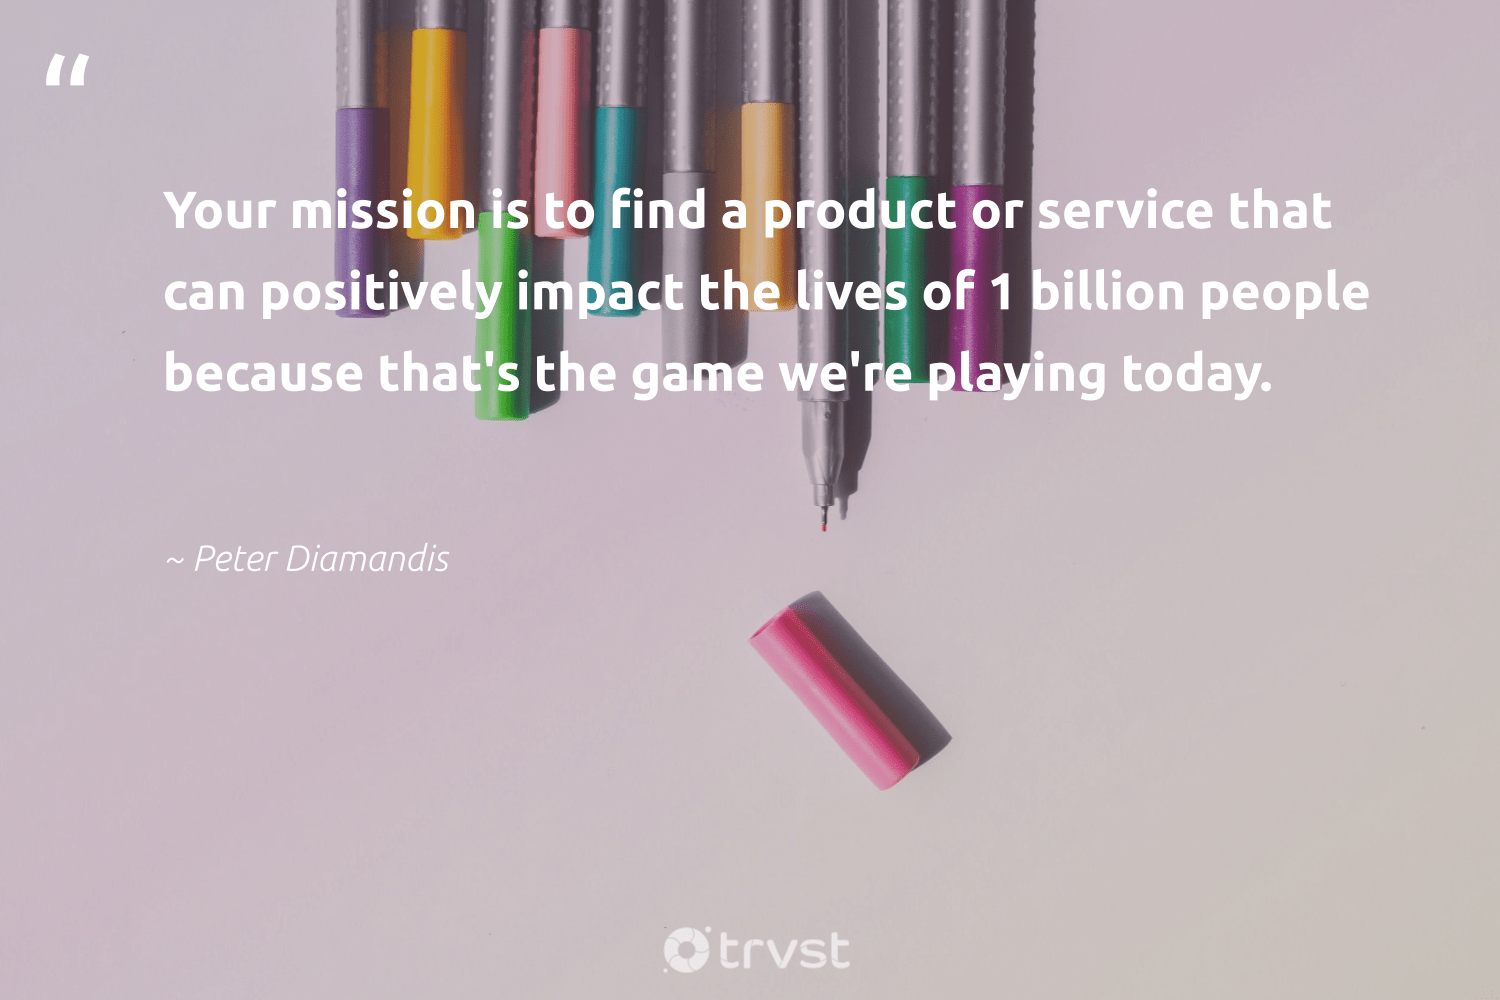 """Your mission is to find a product or service that can positively impact the lives of 1 billion people because that's the game we're playing today.""  - Peter Diamandis #trvst #quotes #impact #weareallone #changetheworld #socialchange #beinspired #ethicalbusiness #socialimpact #makeadifference #gogreen #giveback"